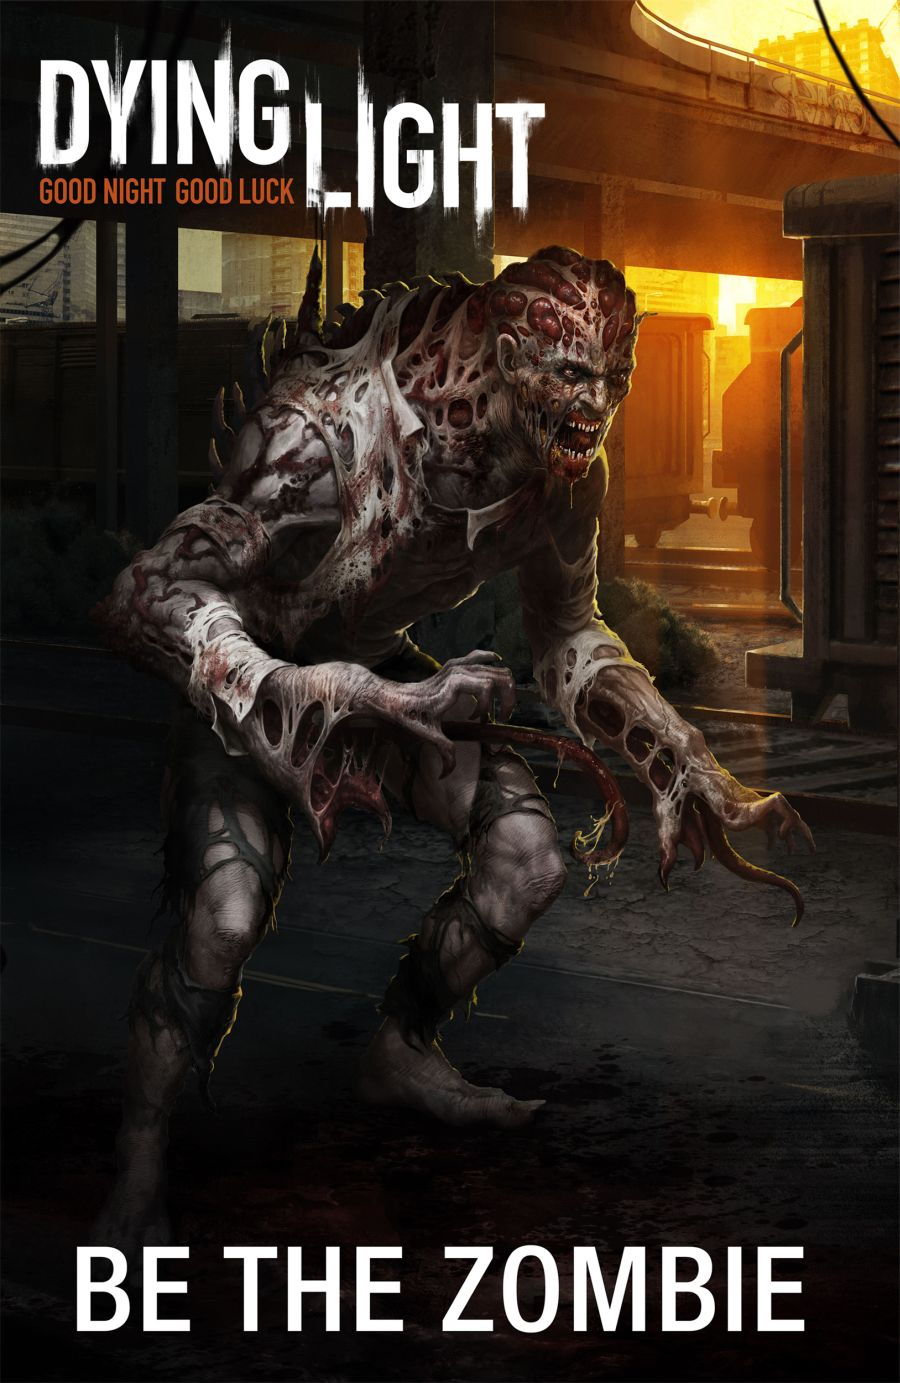 Dying Light PS4 trailer shows off zombie survival game from Techland - VG247